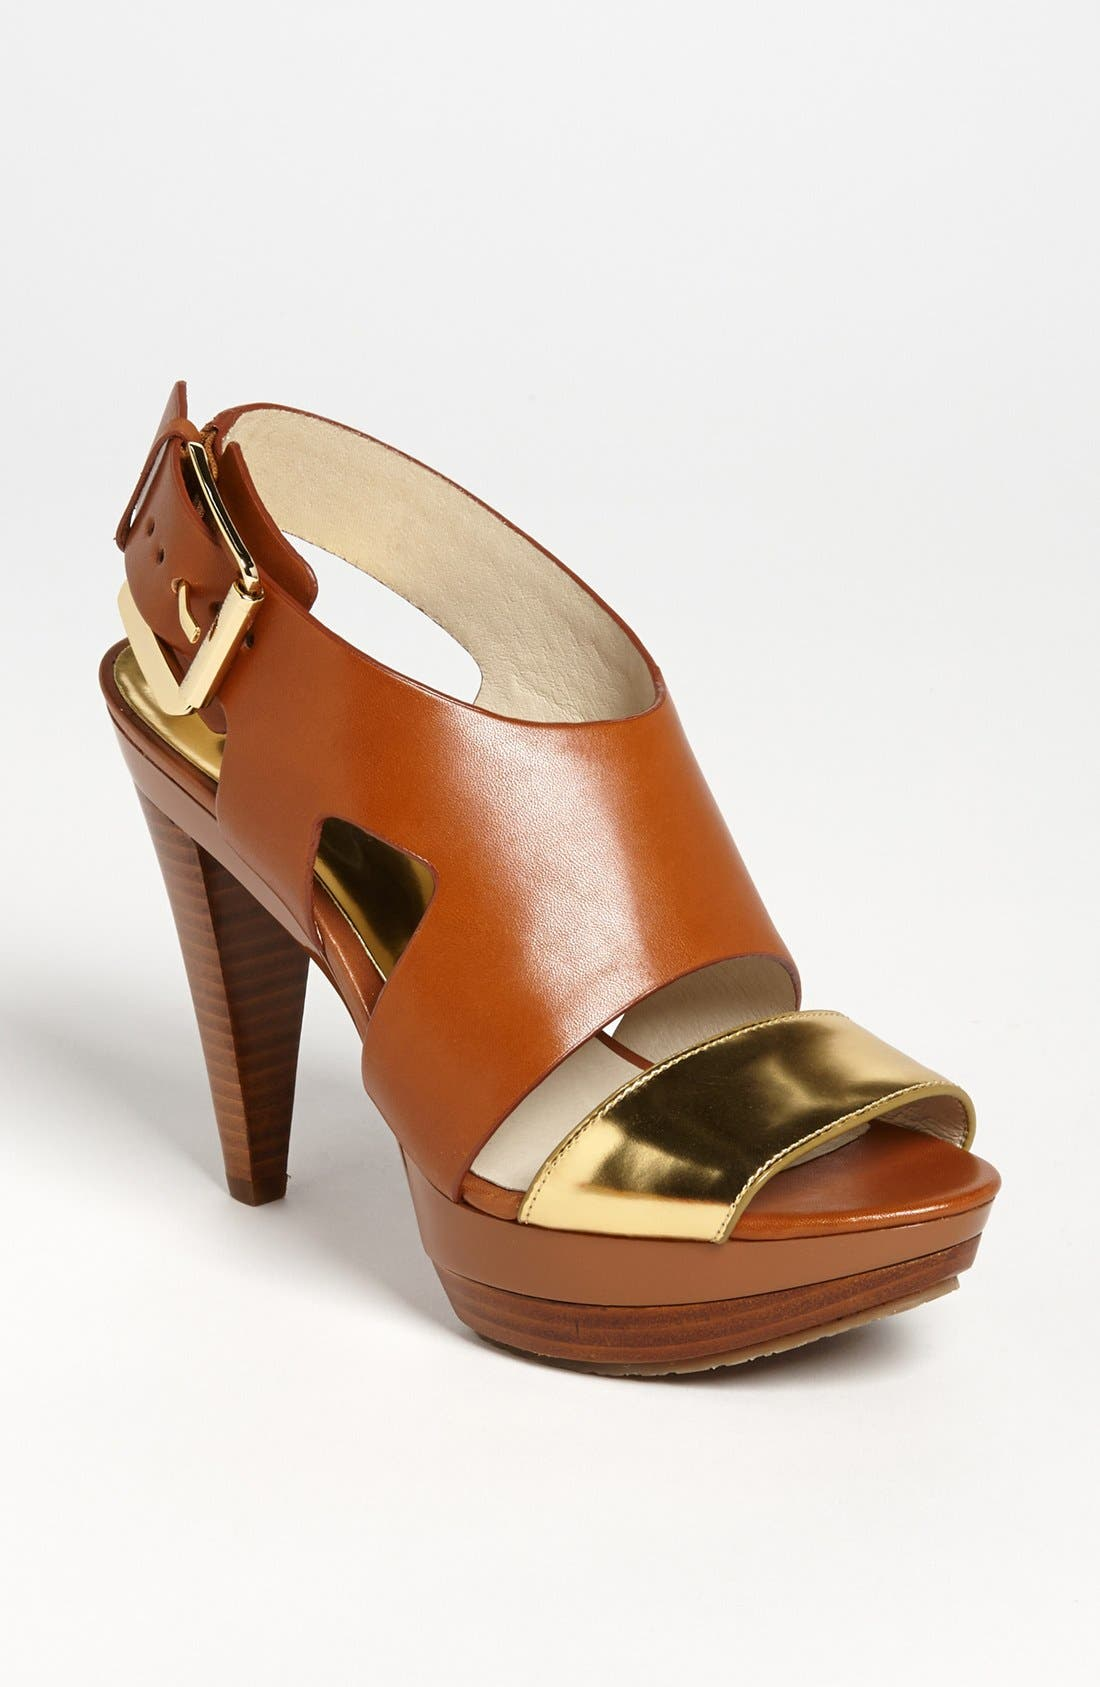 Alternate Image 1 Selected - MICHAEL Michael Kors 'Carla' Sandal